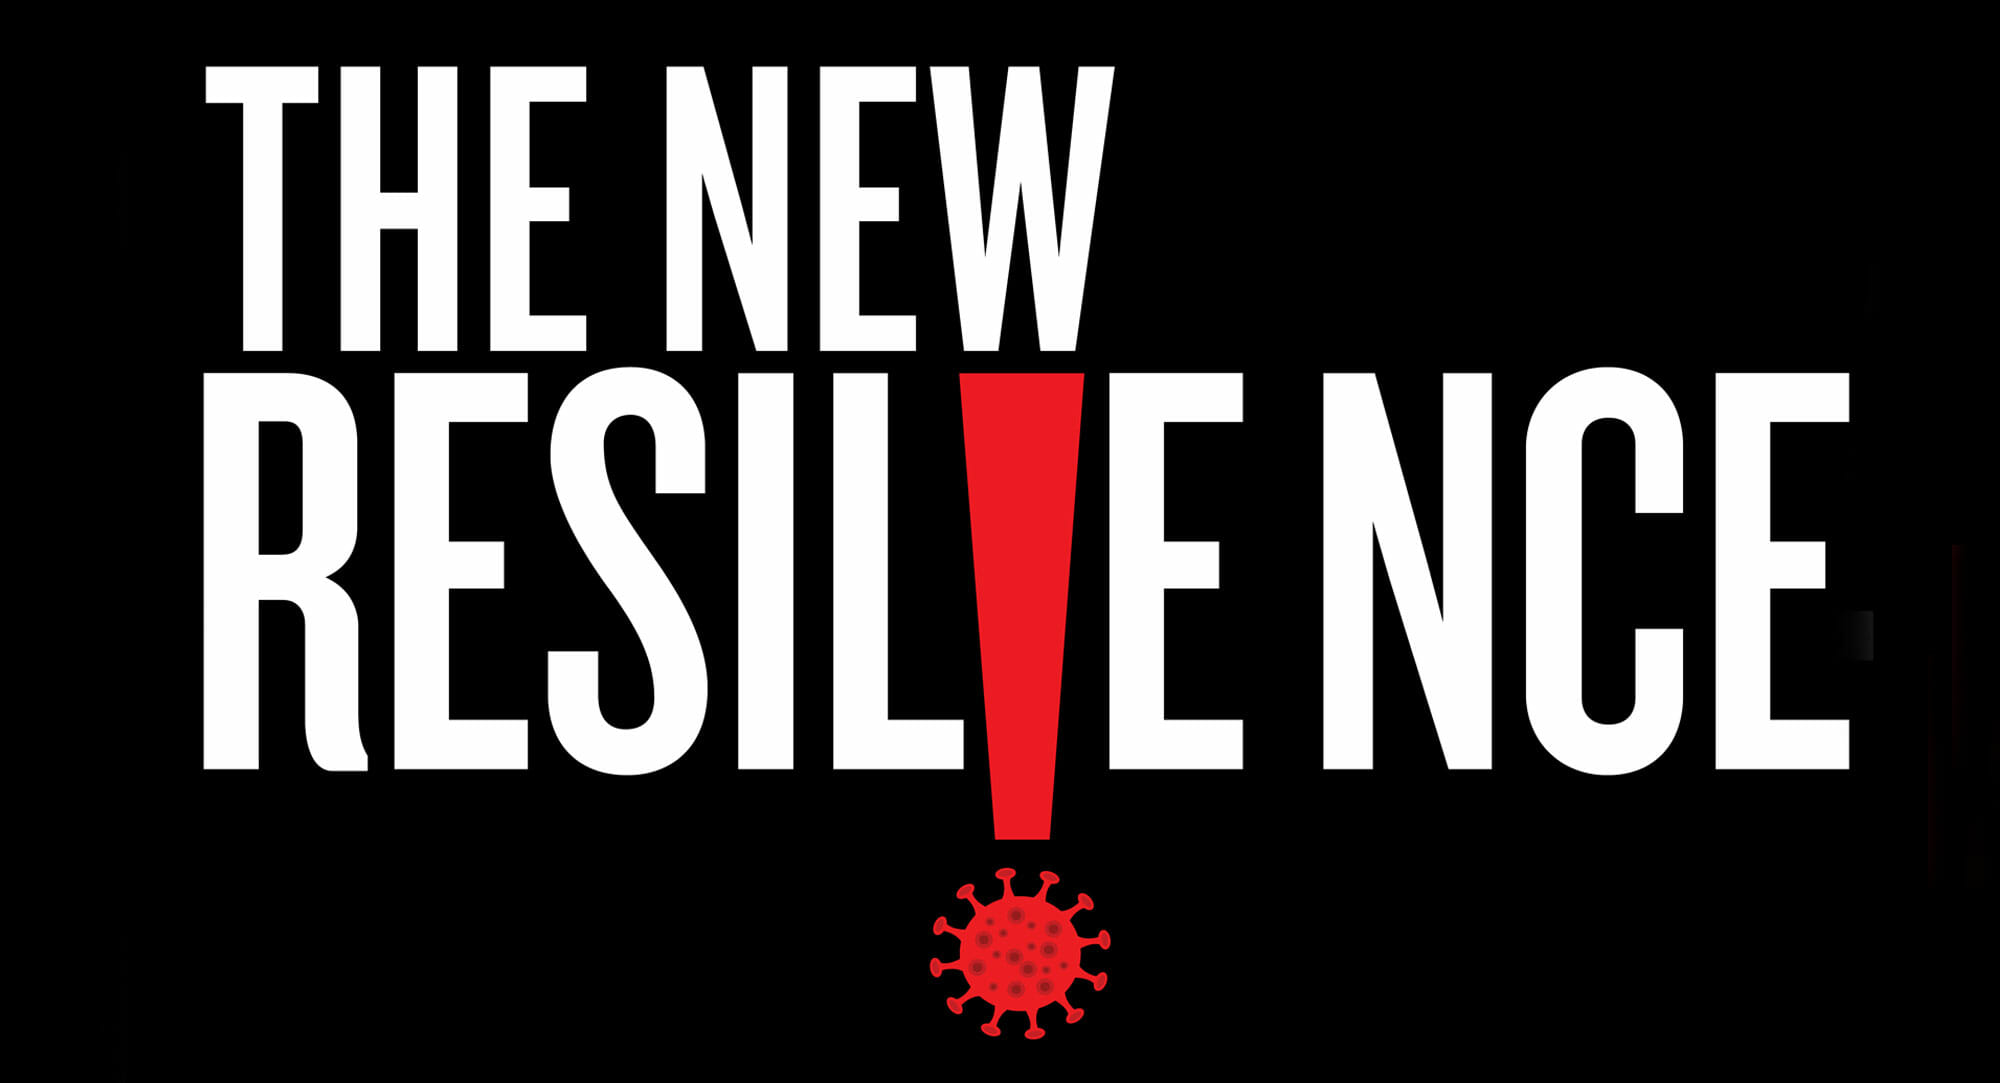 The new cybersecurity resilience